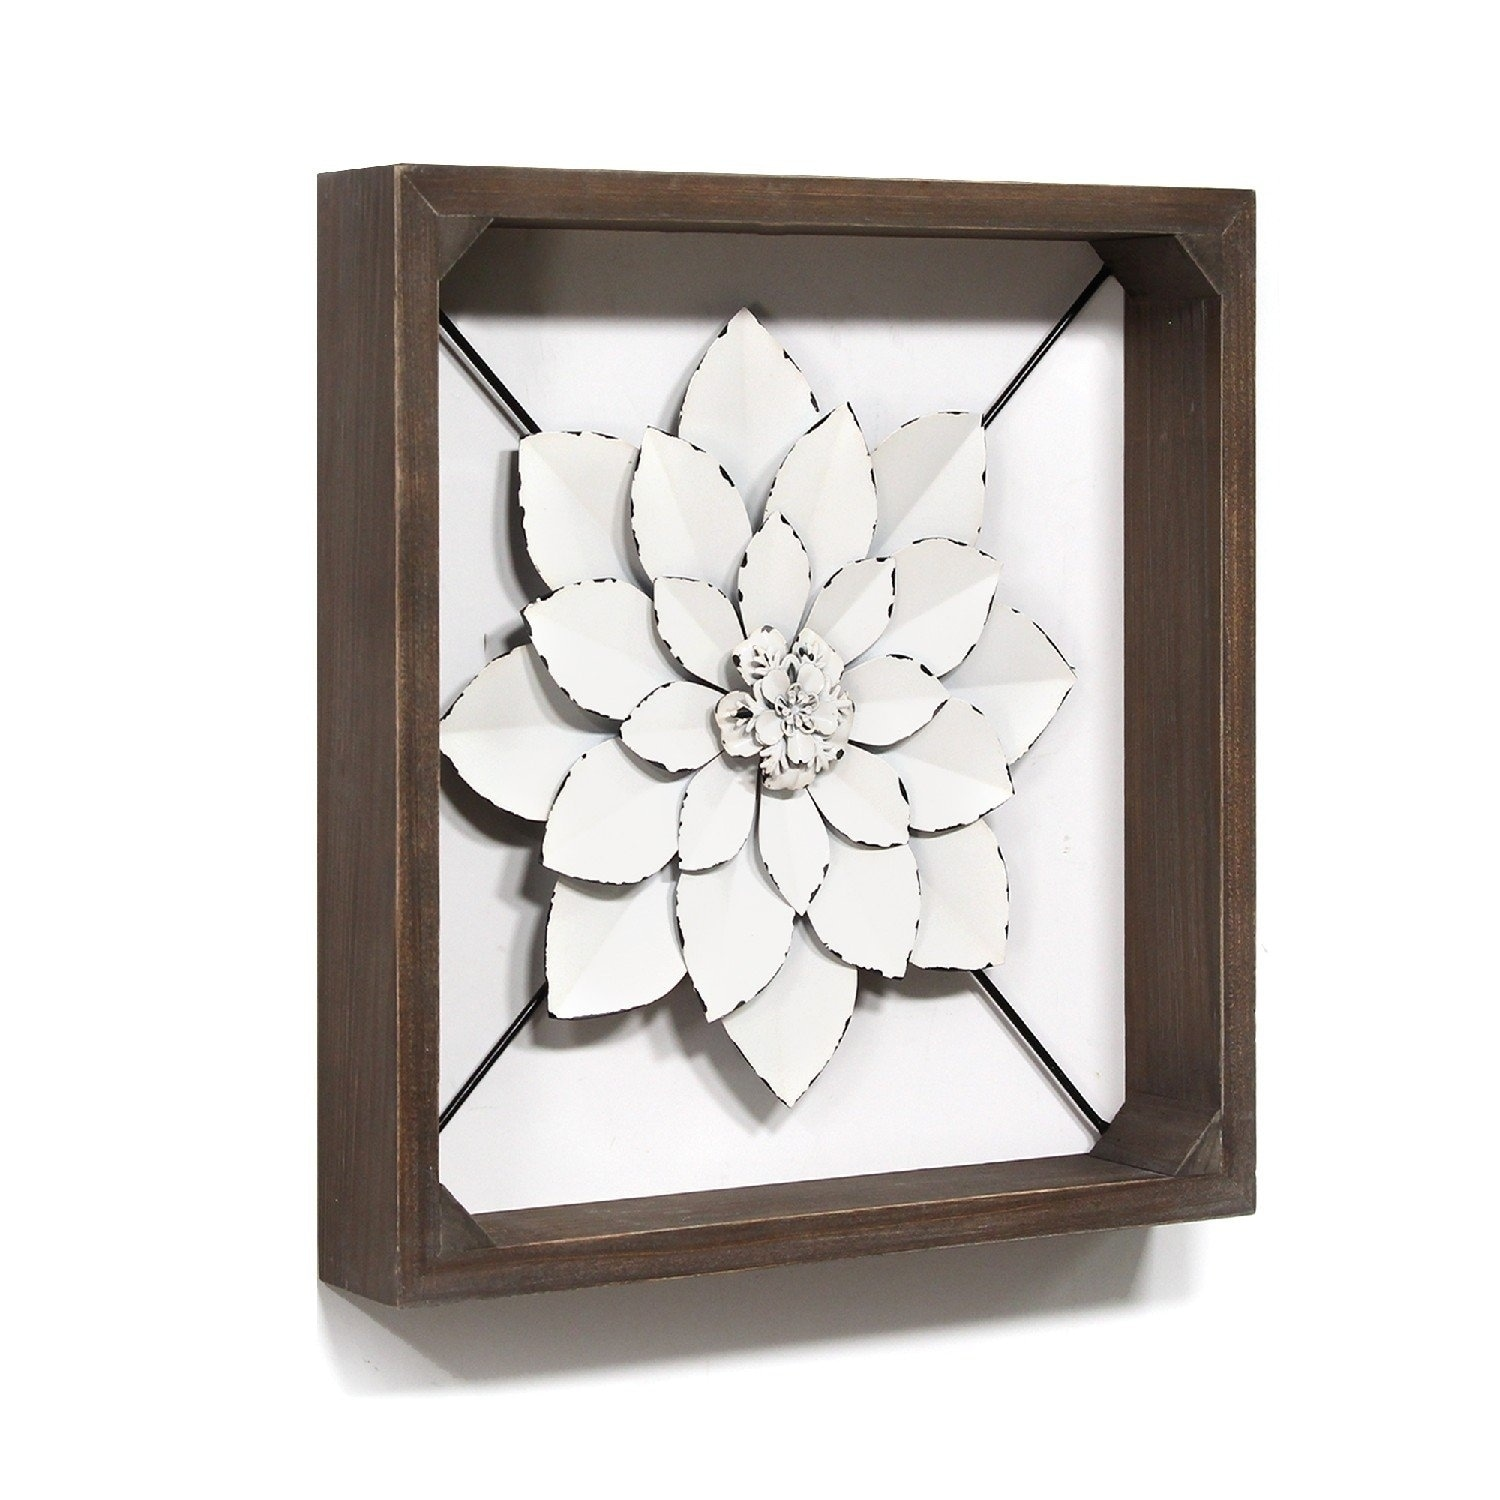 Stratton Home Decor White Framed Metal Flower Overstock 28423866